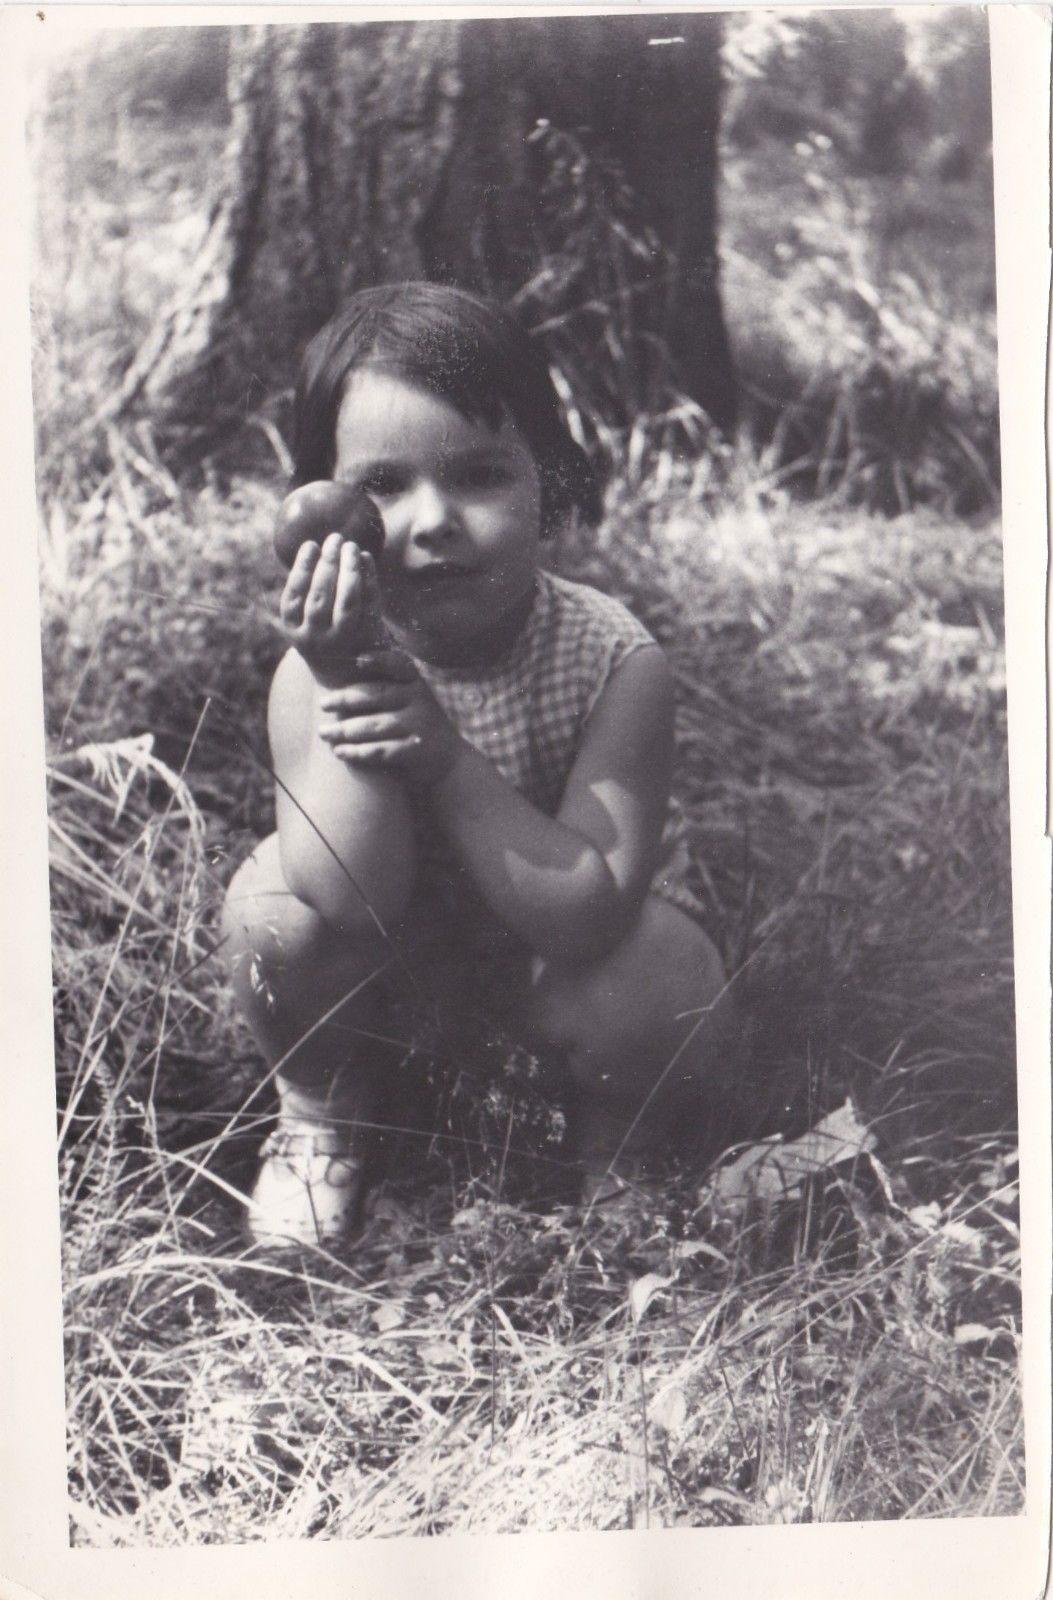 russian girl 1975 holds piece of fruit